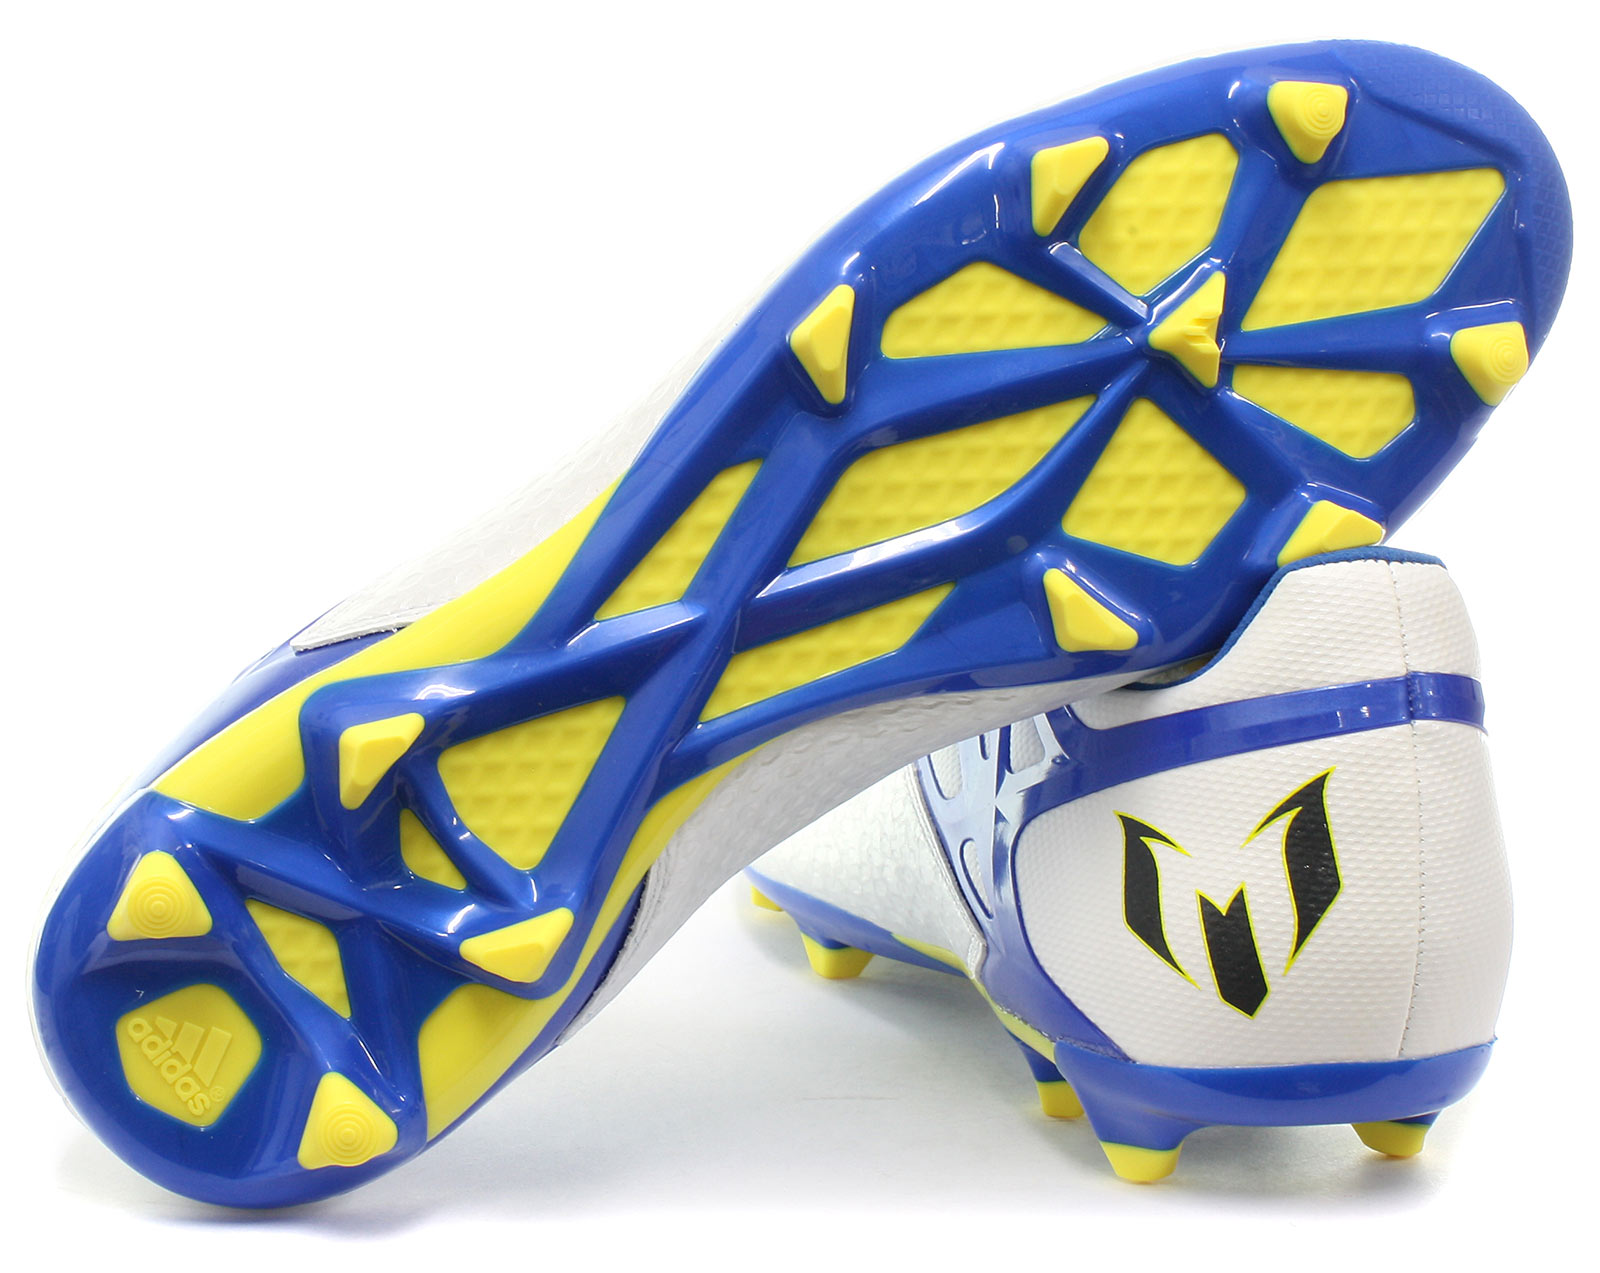 ff45499049b adidas Messi 15.2 Fg ag Mens Football BOOTS B23775 Metallic Blue Size UK 8  8.5. About this product. Picture 1 of 9  Picture 2 of 9  Picture 3 of 9 ...